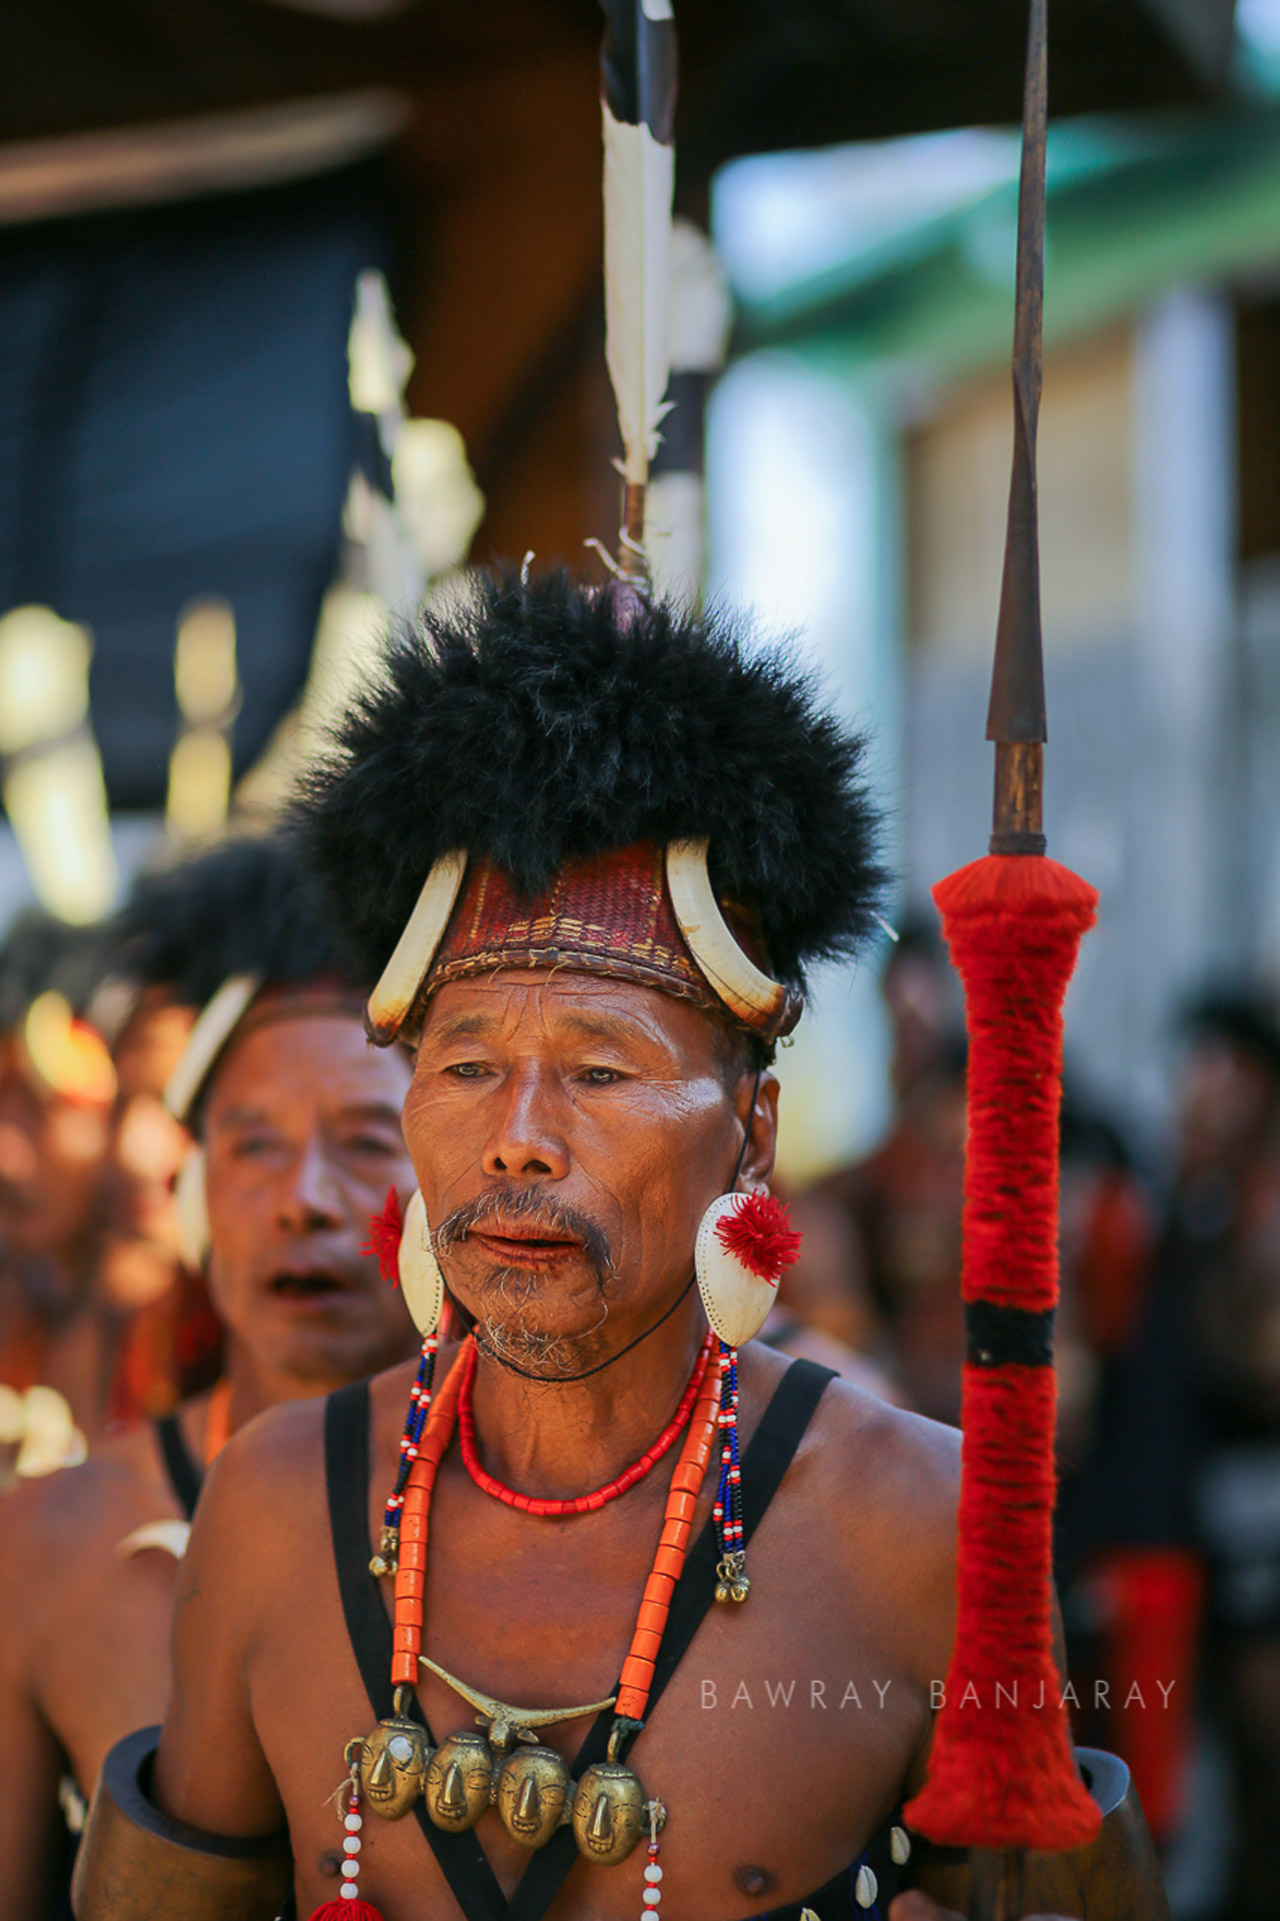 A tribal at the Hornbill Festival 2018